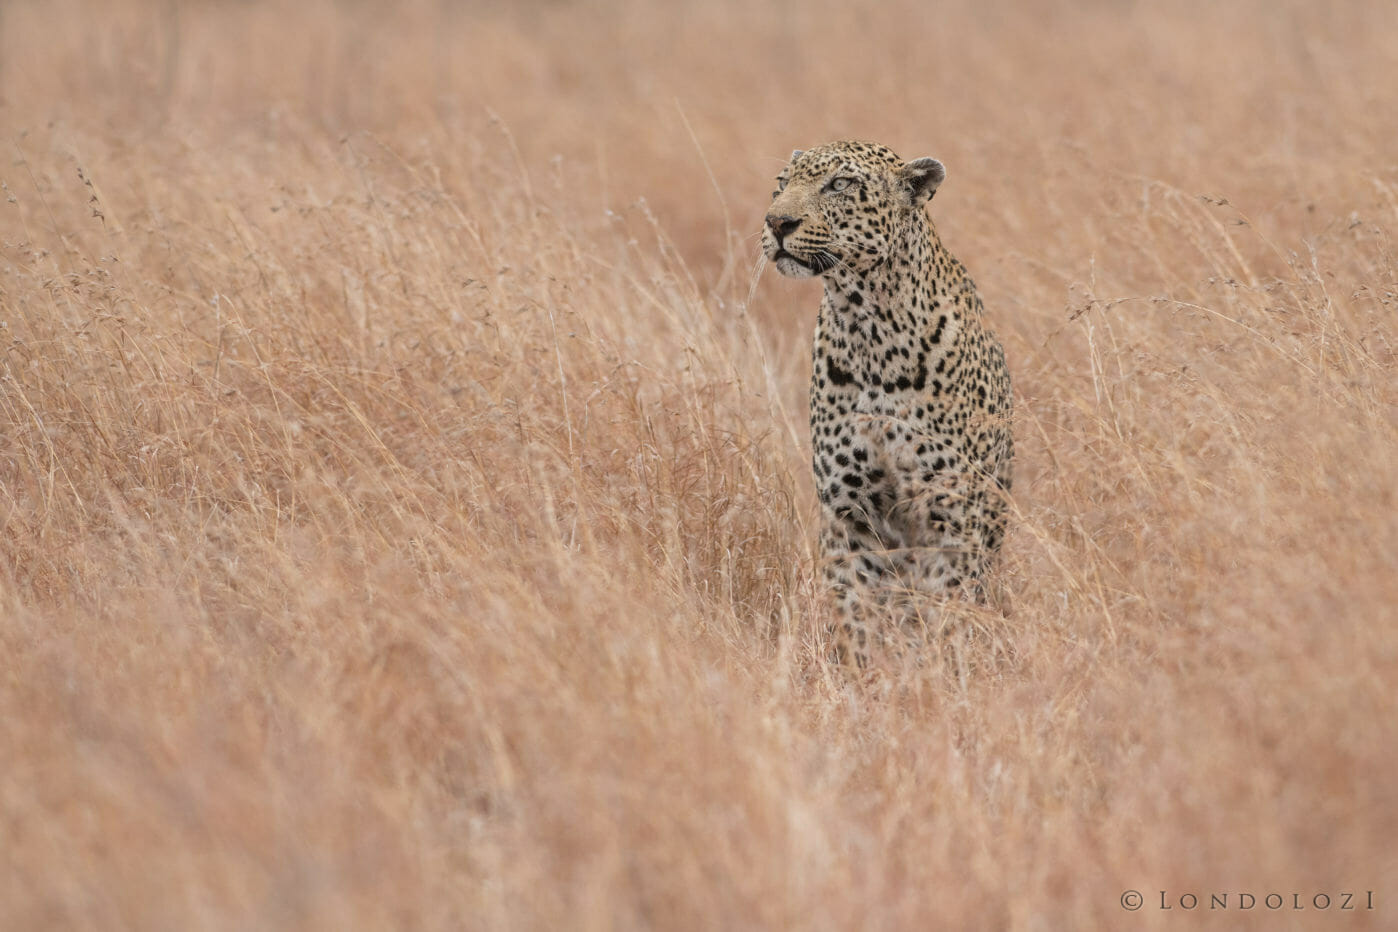 The Kaxane male leopard sits in tall dry grass at Londolozi